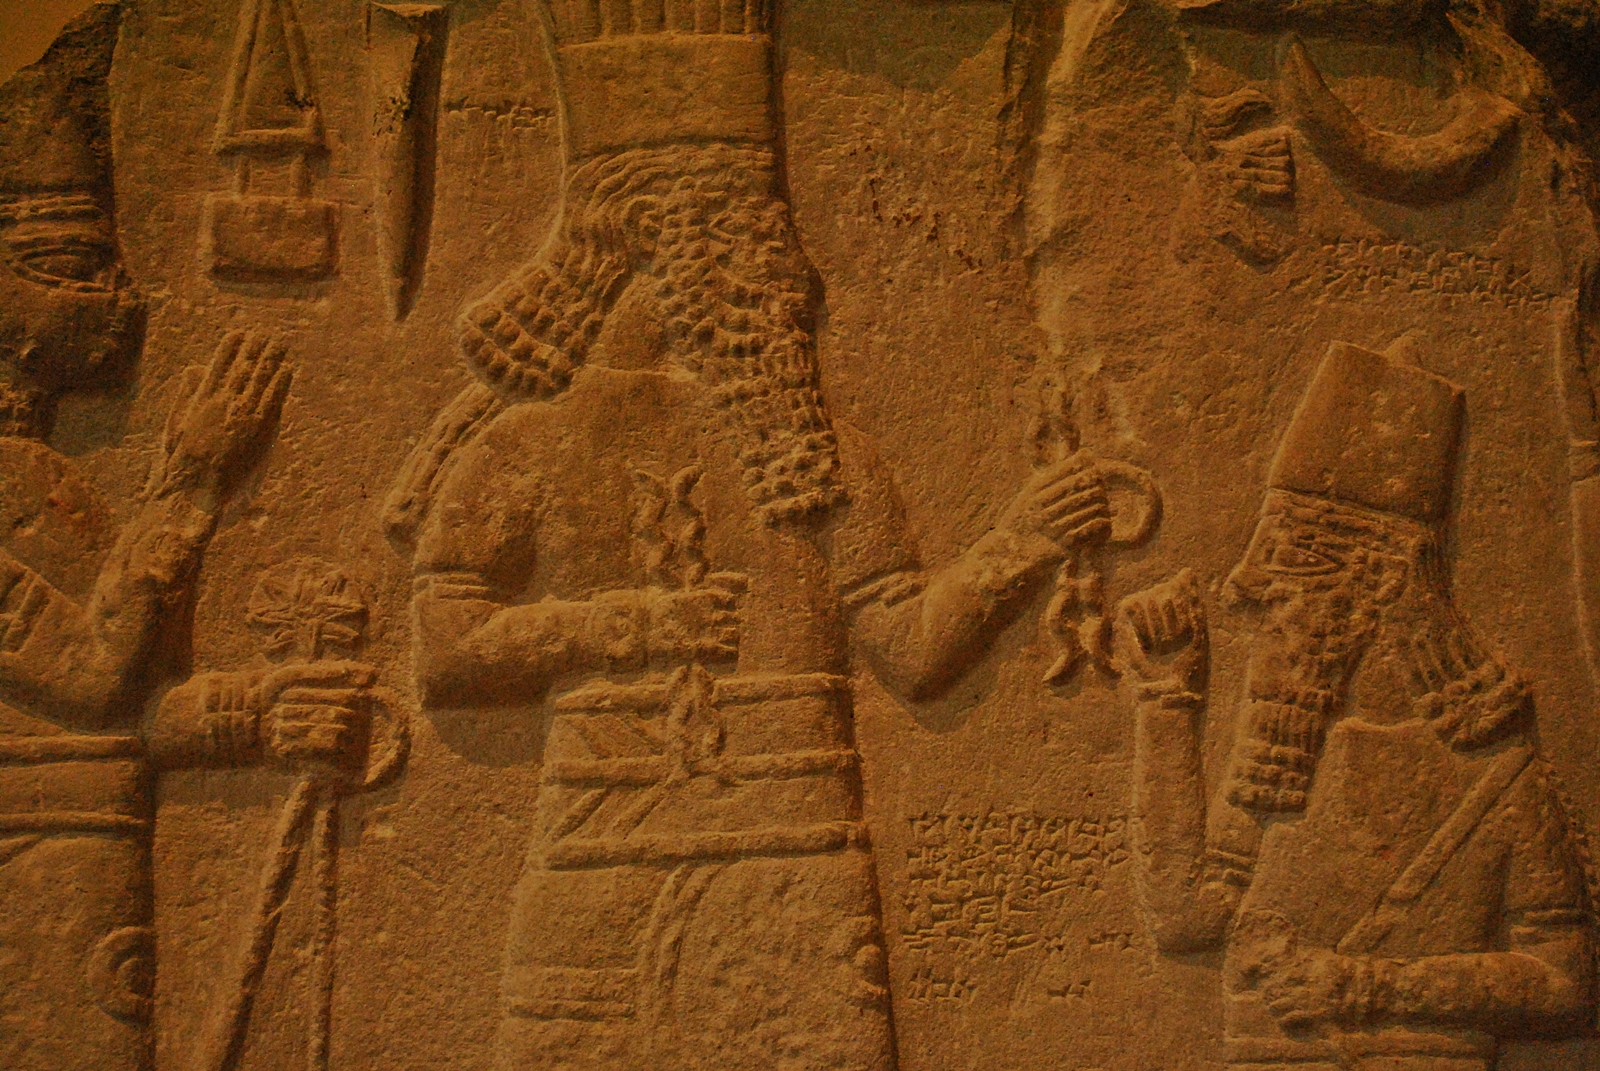 9bb - giant gods Inanna, Adad, & mixed-breed Shamash-ush-usur, governor of Suhi and Mari, bas-relief from the palace of Nebuchadnezzar II (605-562 B.C.) Babylon, Mesopotamia (Iraq), artefacts of the giant alien gods & their giant mixed-breed offspring are being destroyed by Radical Islam, attempting to eradicate ancient historical records of our long forgotten past, that directly contradict the 7th century teachings of their prophet, they will not succeed!